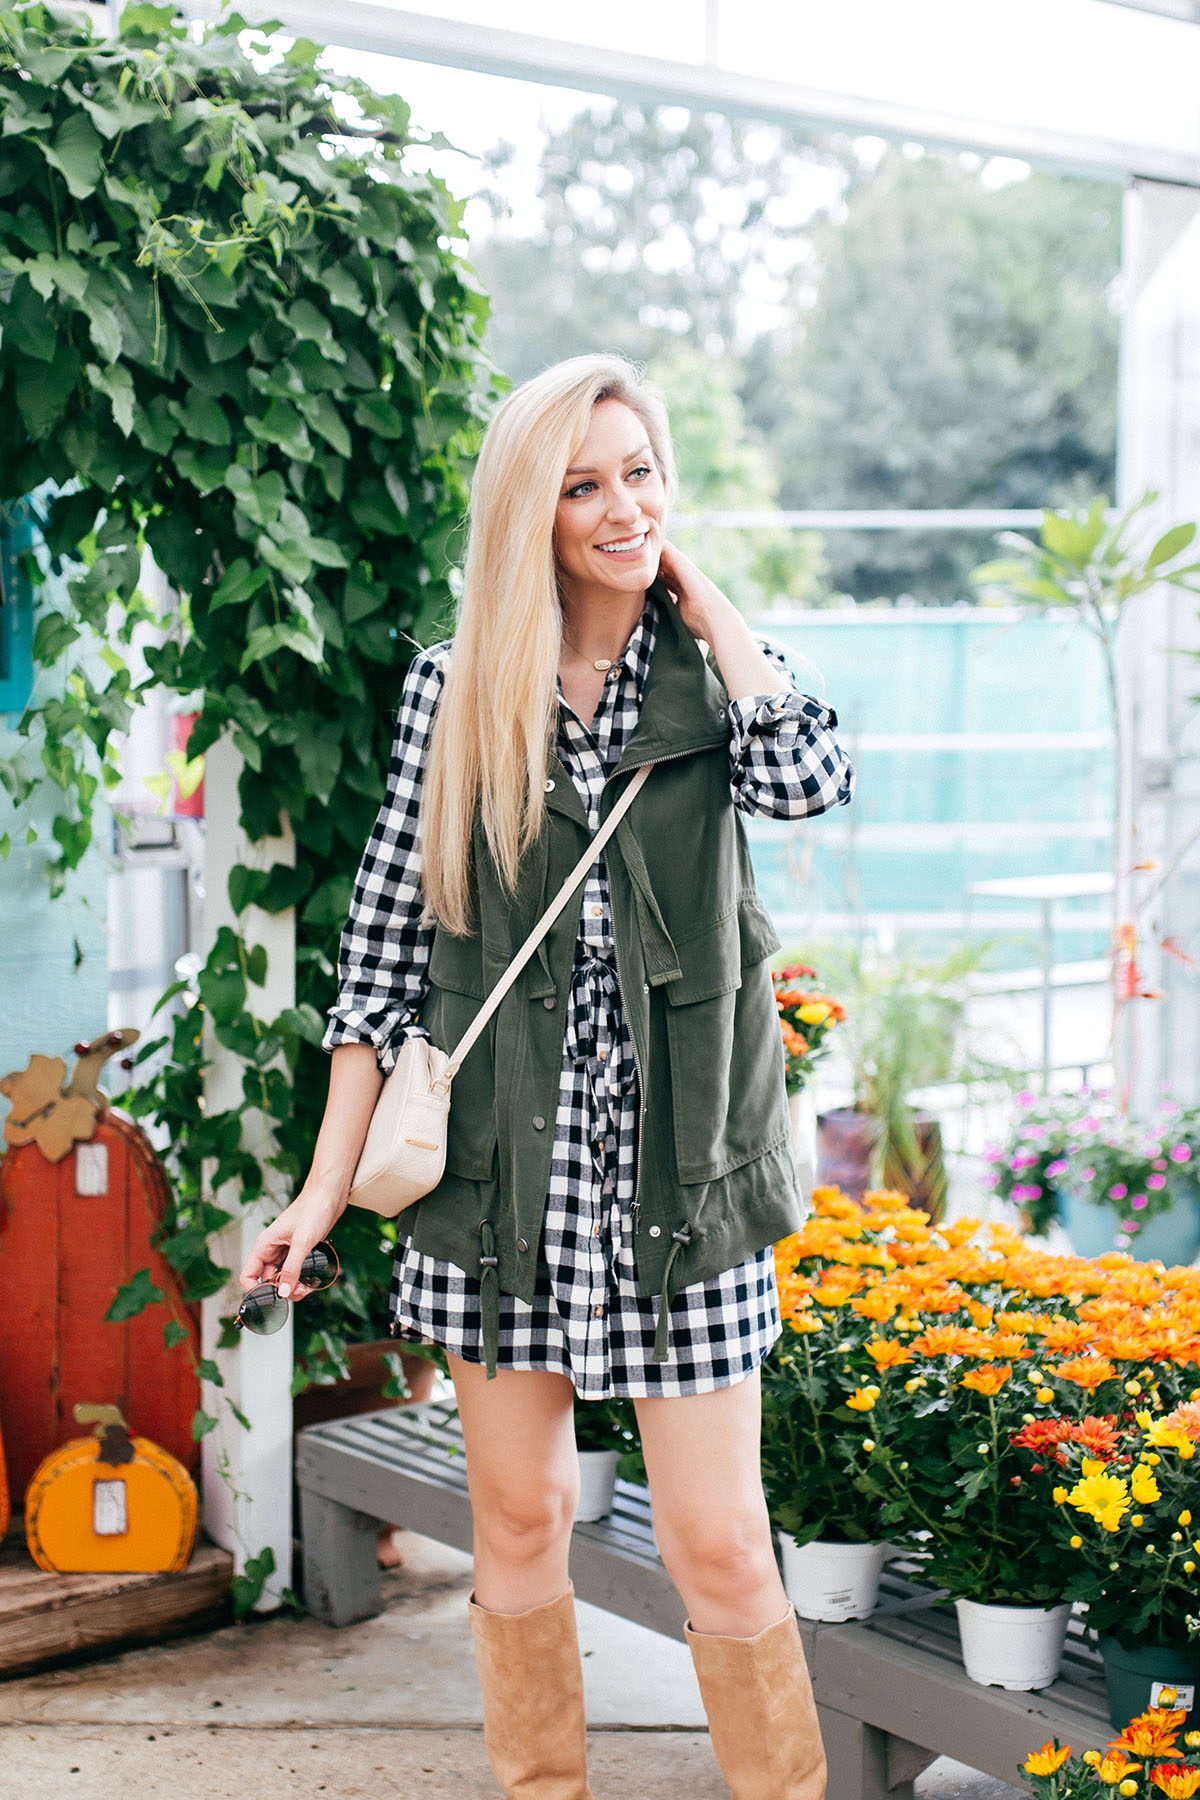 Productivity Hacks to Knock Out Your To-Do List + Fall Outfit Inspo